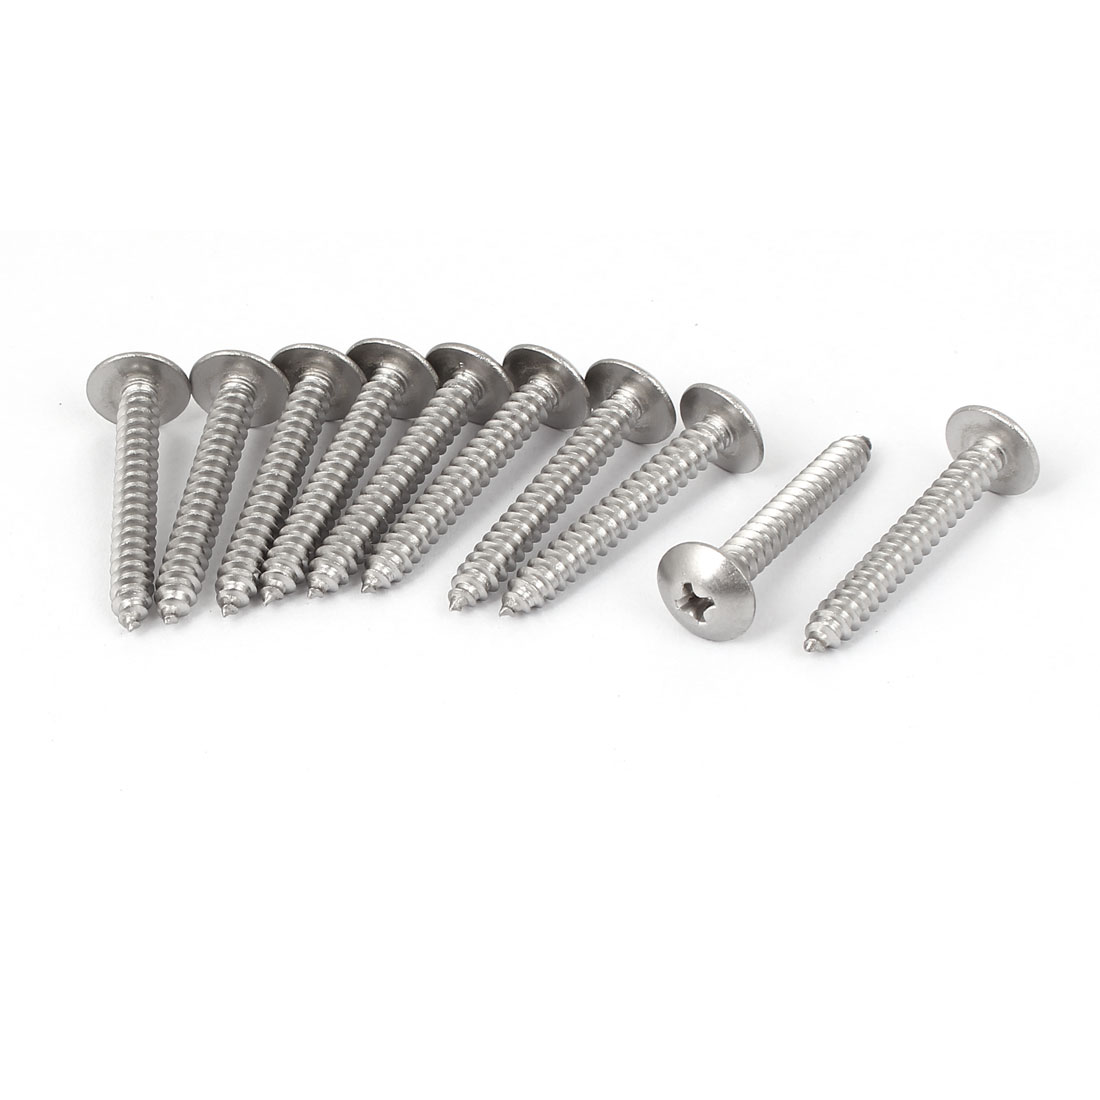 #10 M4.8x35mm Stainless Steel Phillips Truss Head Self Tapping Screws 10pcs